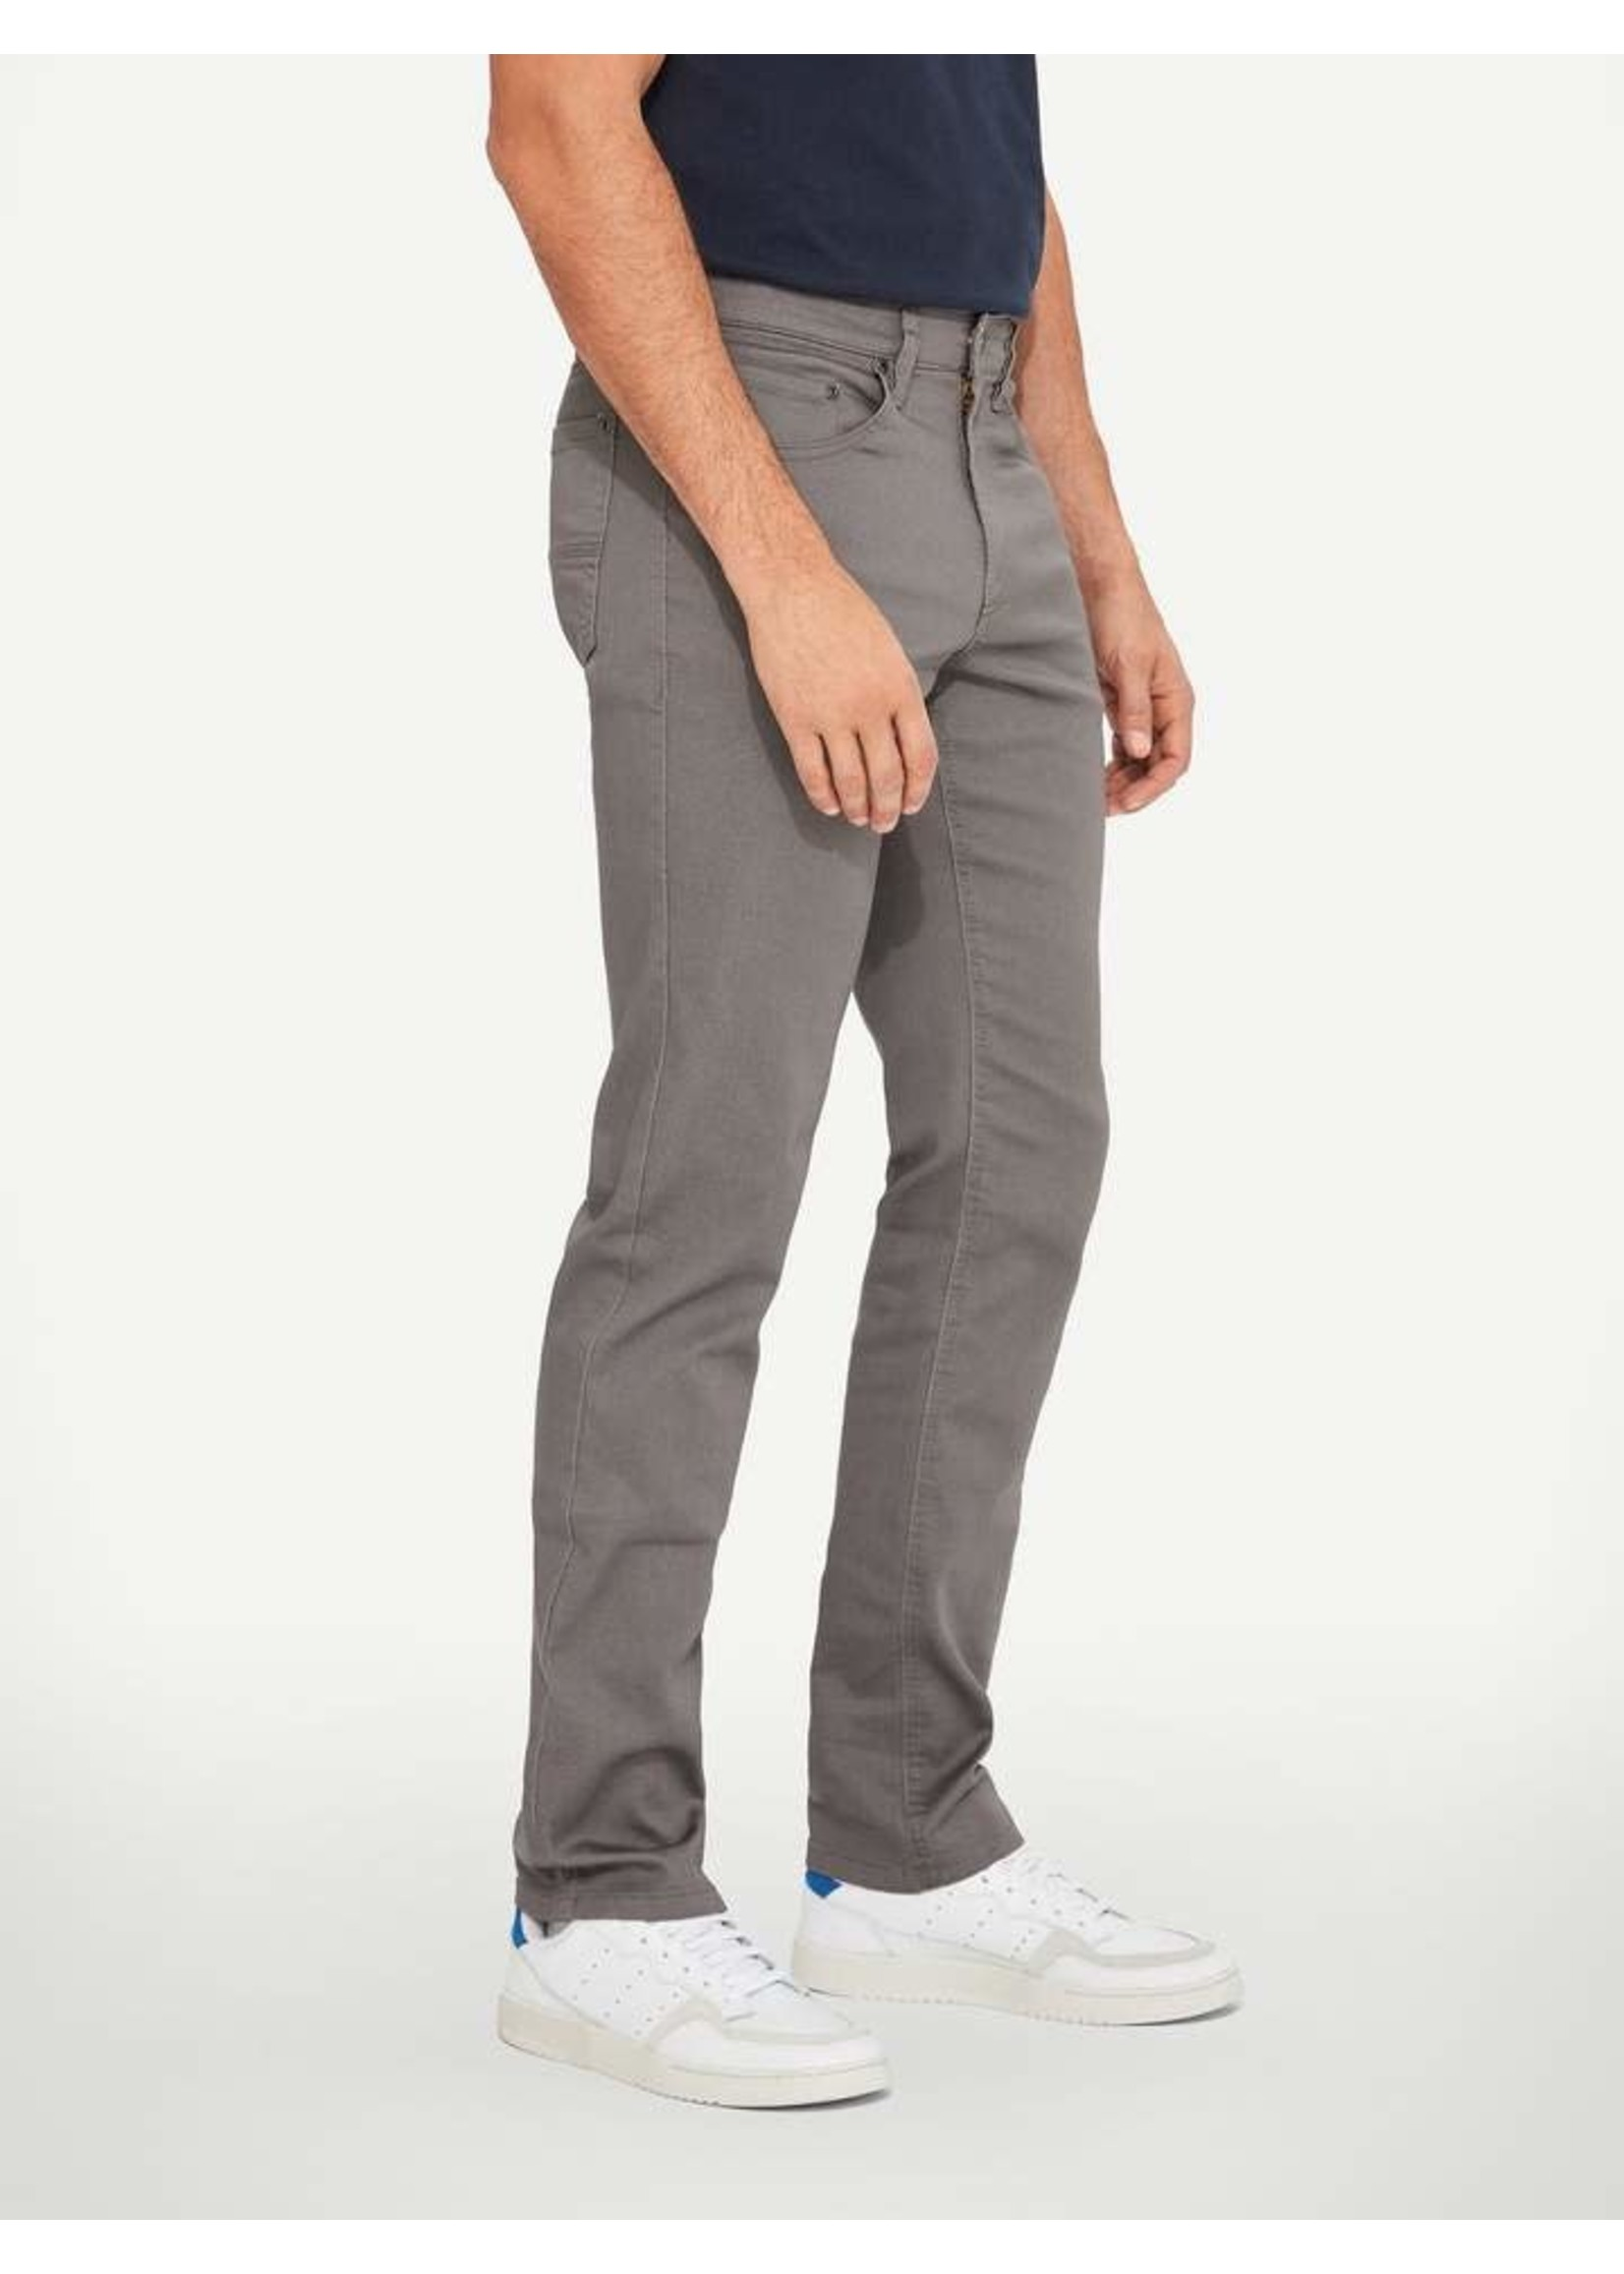 """Lois Jeans Canada The """"Brad Slim 6240-04"""" by Lois Jeans"""